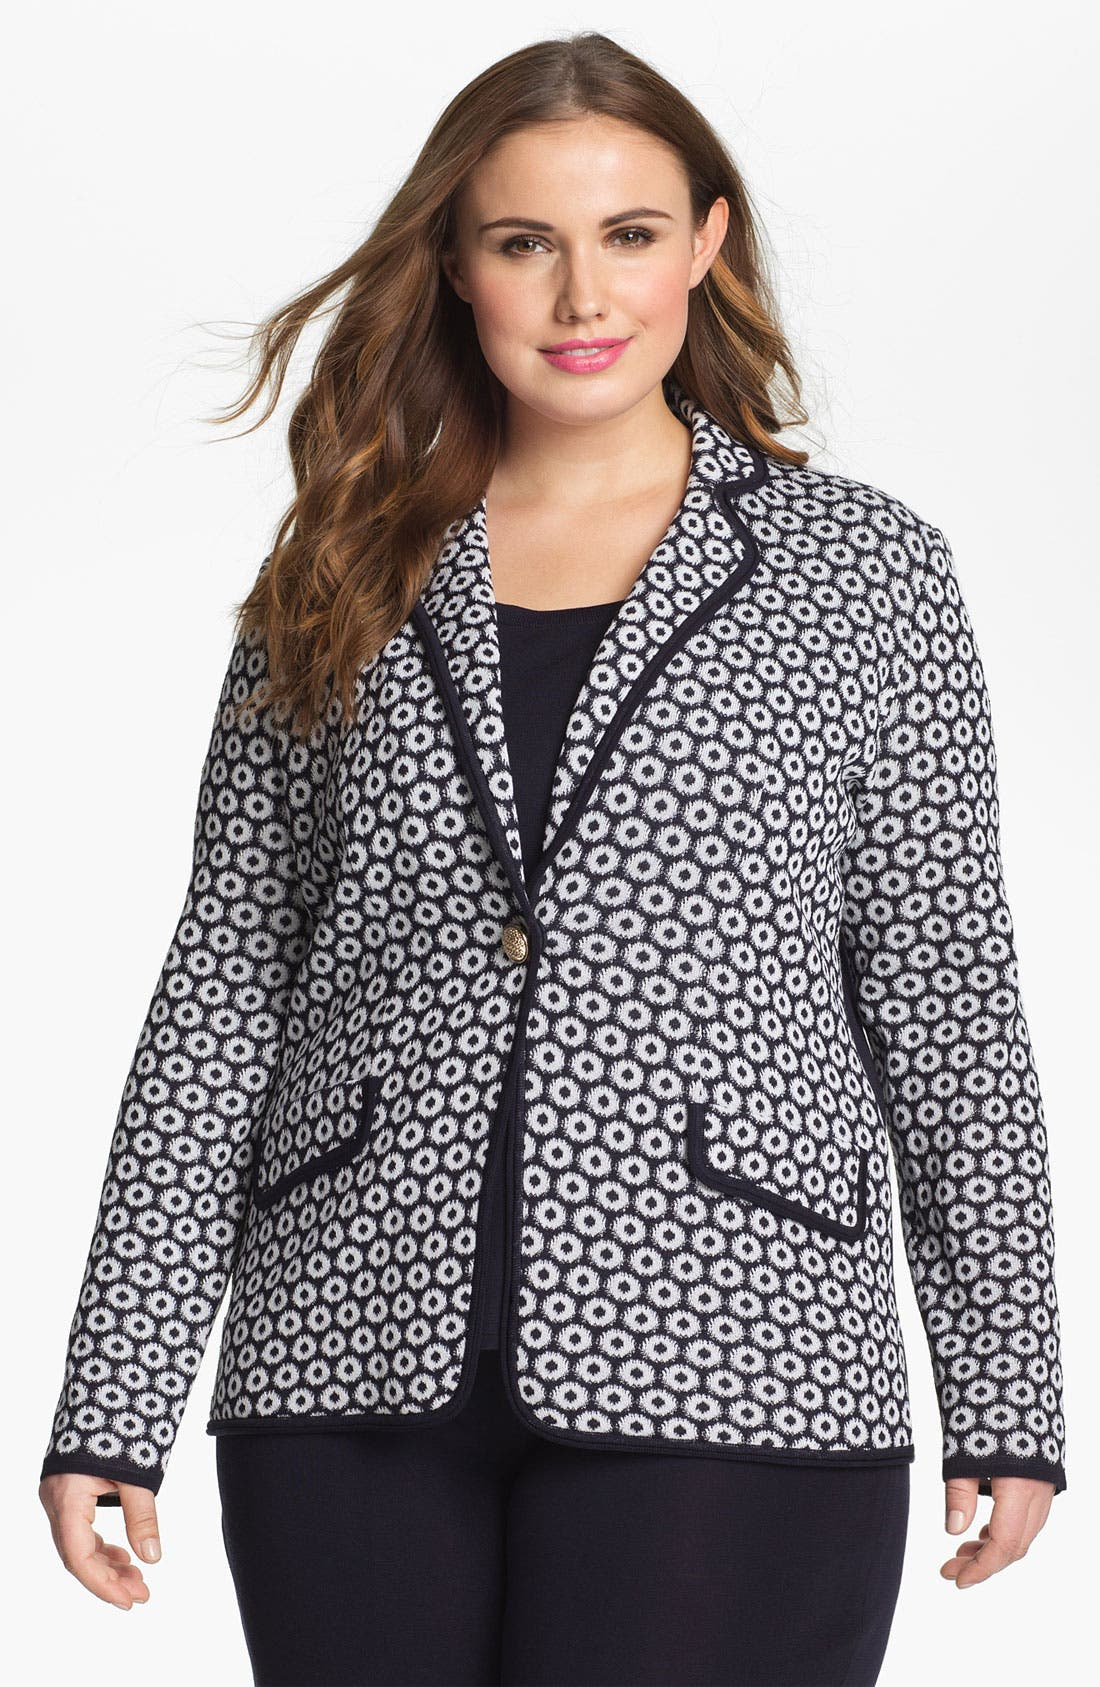 Alternate Image 1 Selected - Exclusively Misook 'Camille' Knit Jacquard Jacket (Plus Size)